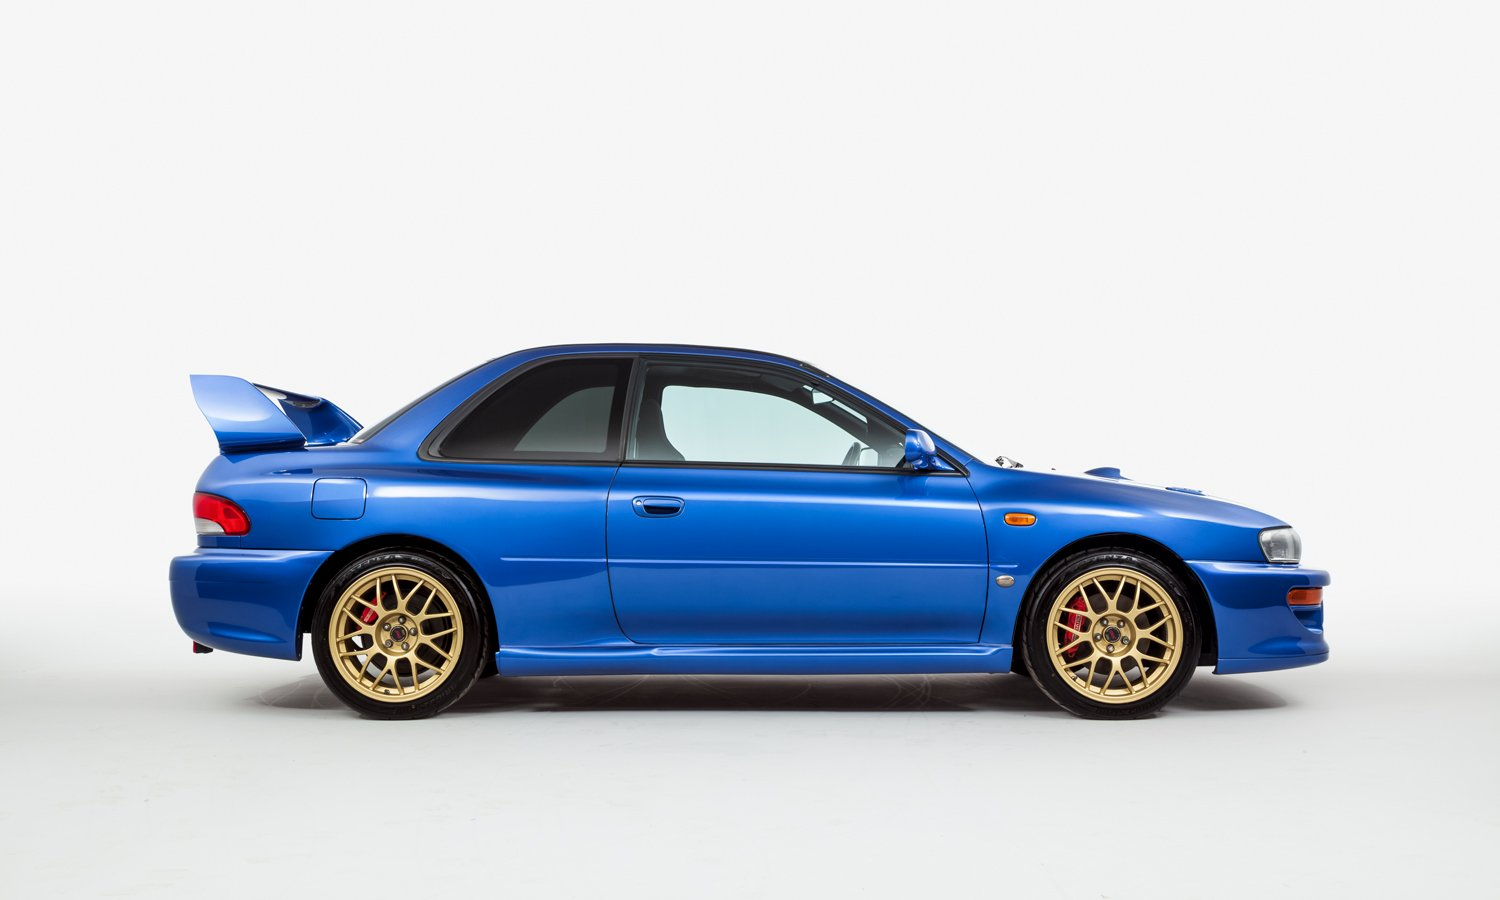 Subaru-Impreza-22B-STi-1998-for-sale-9